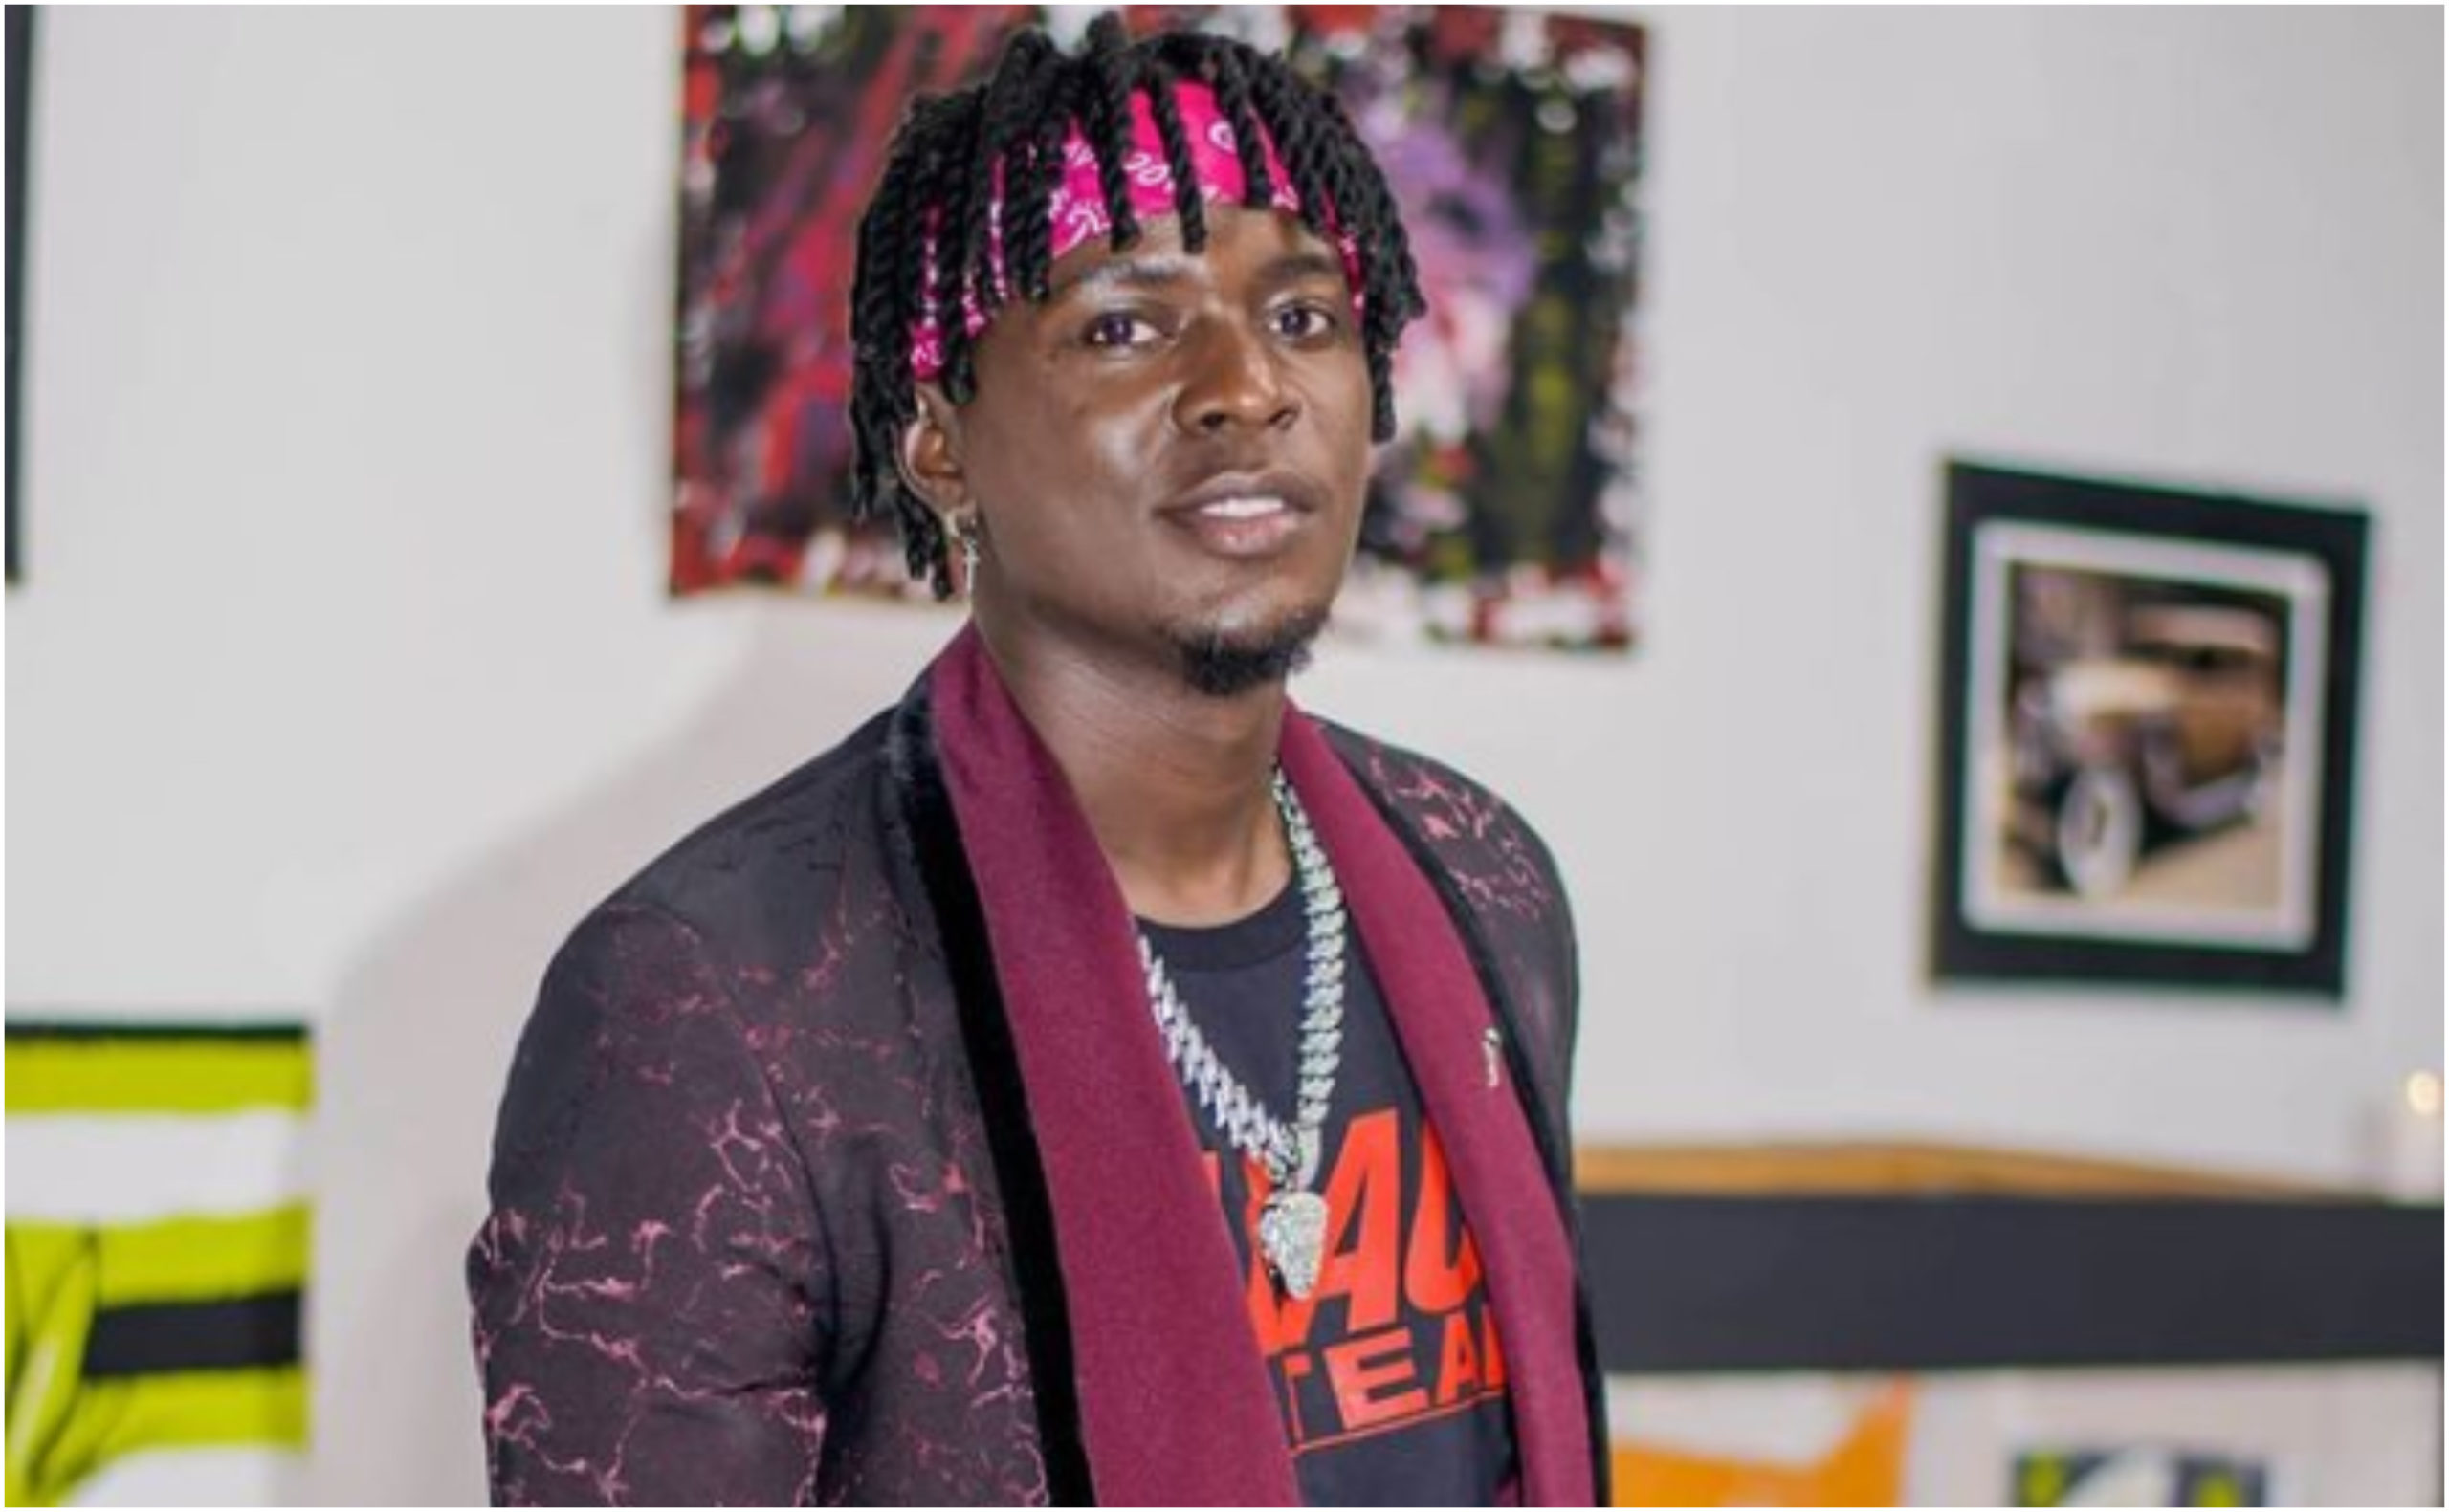 At some point Willy Paul needs to take responsibility of his baby making